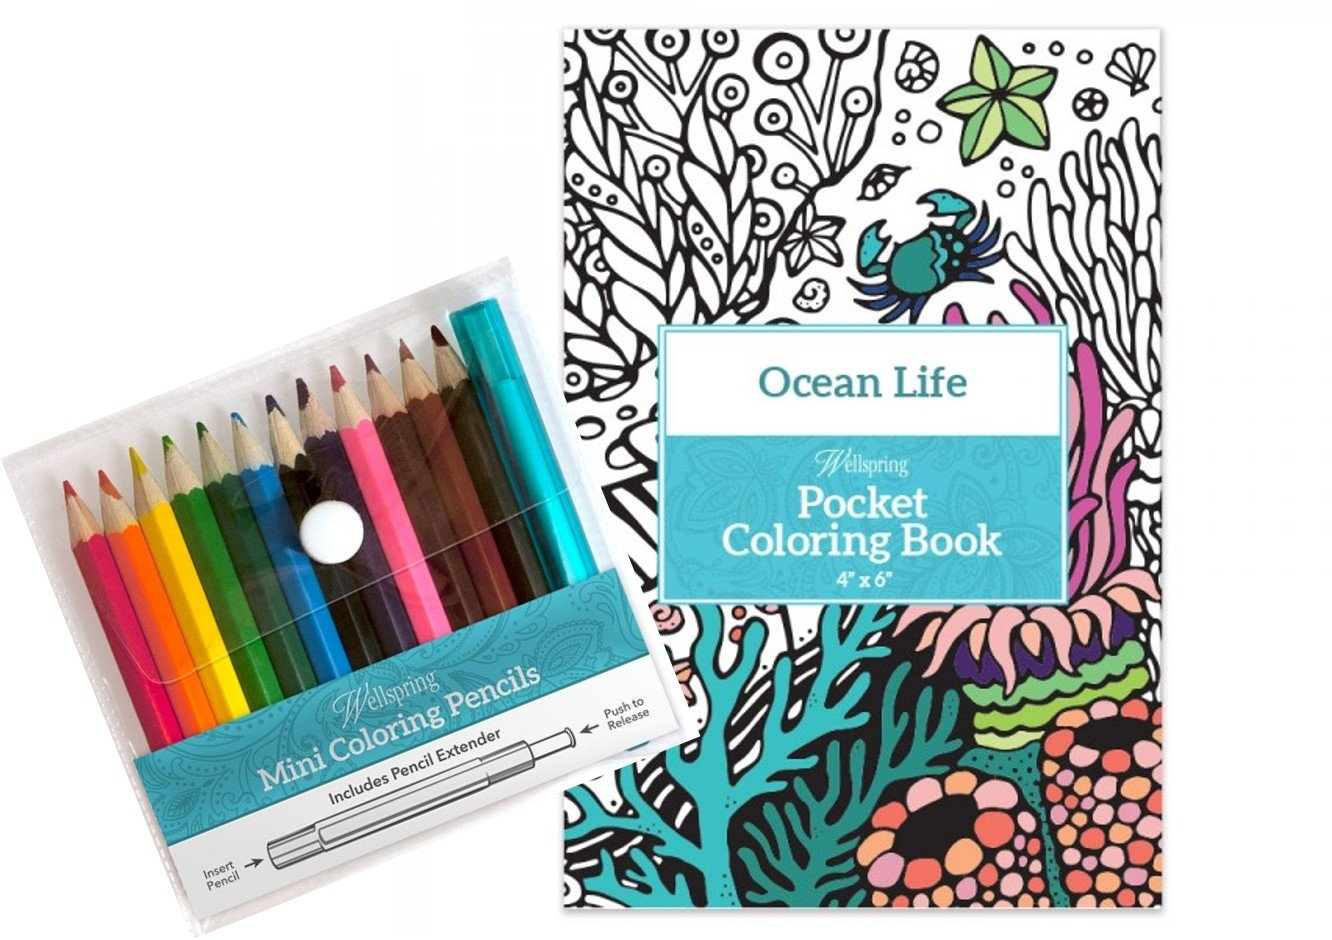 Wellspring Pocket Coloring Book & Coloring Pencils Set (ocean Life